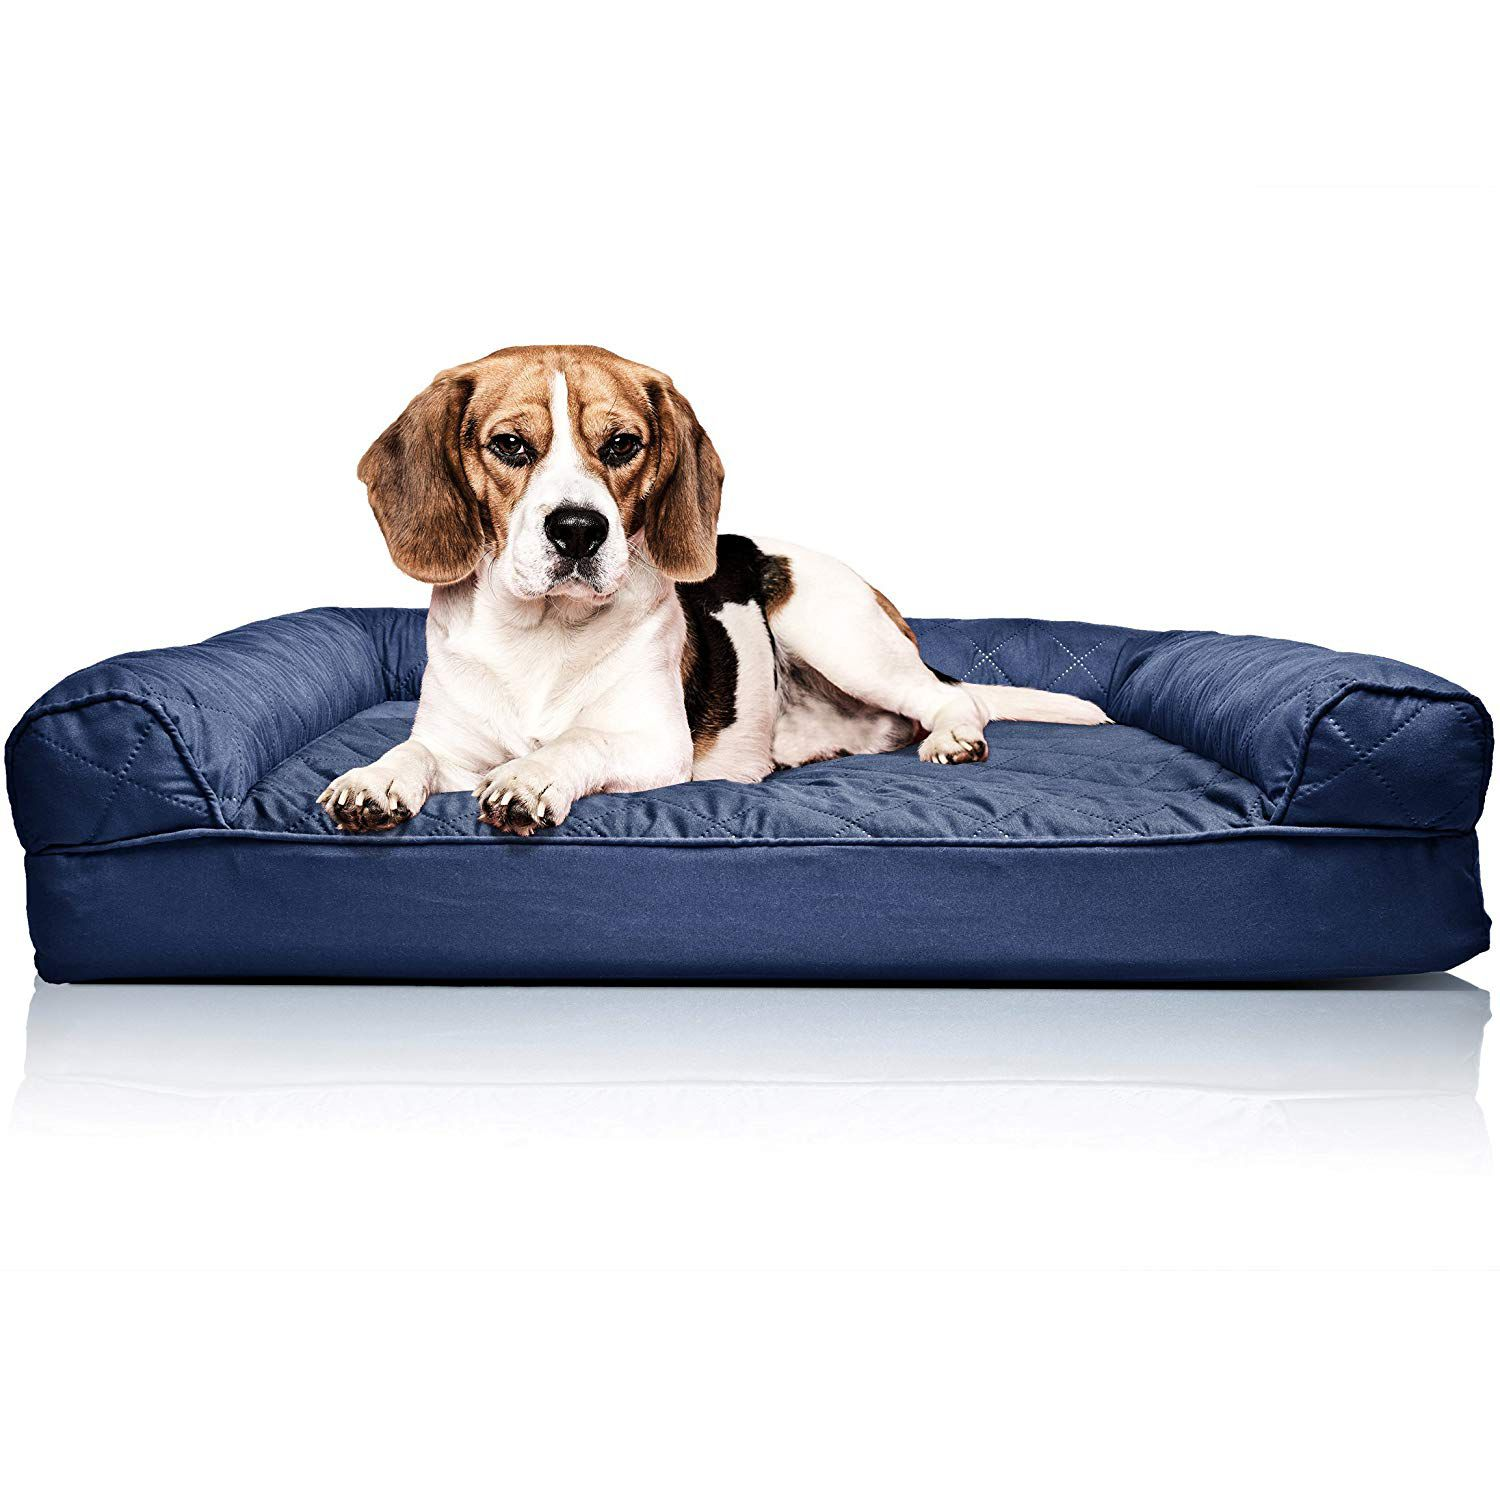 Fabulous The 9 Best Orthopedic Dog Beds Of 2019 Short Links Chair Design For Home Short Linksinfo